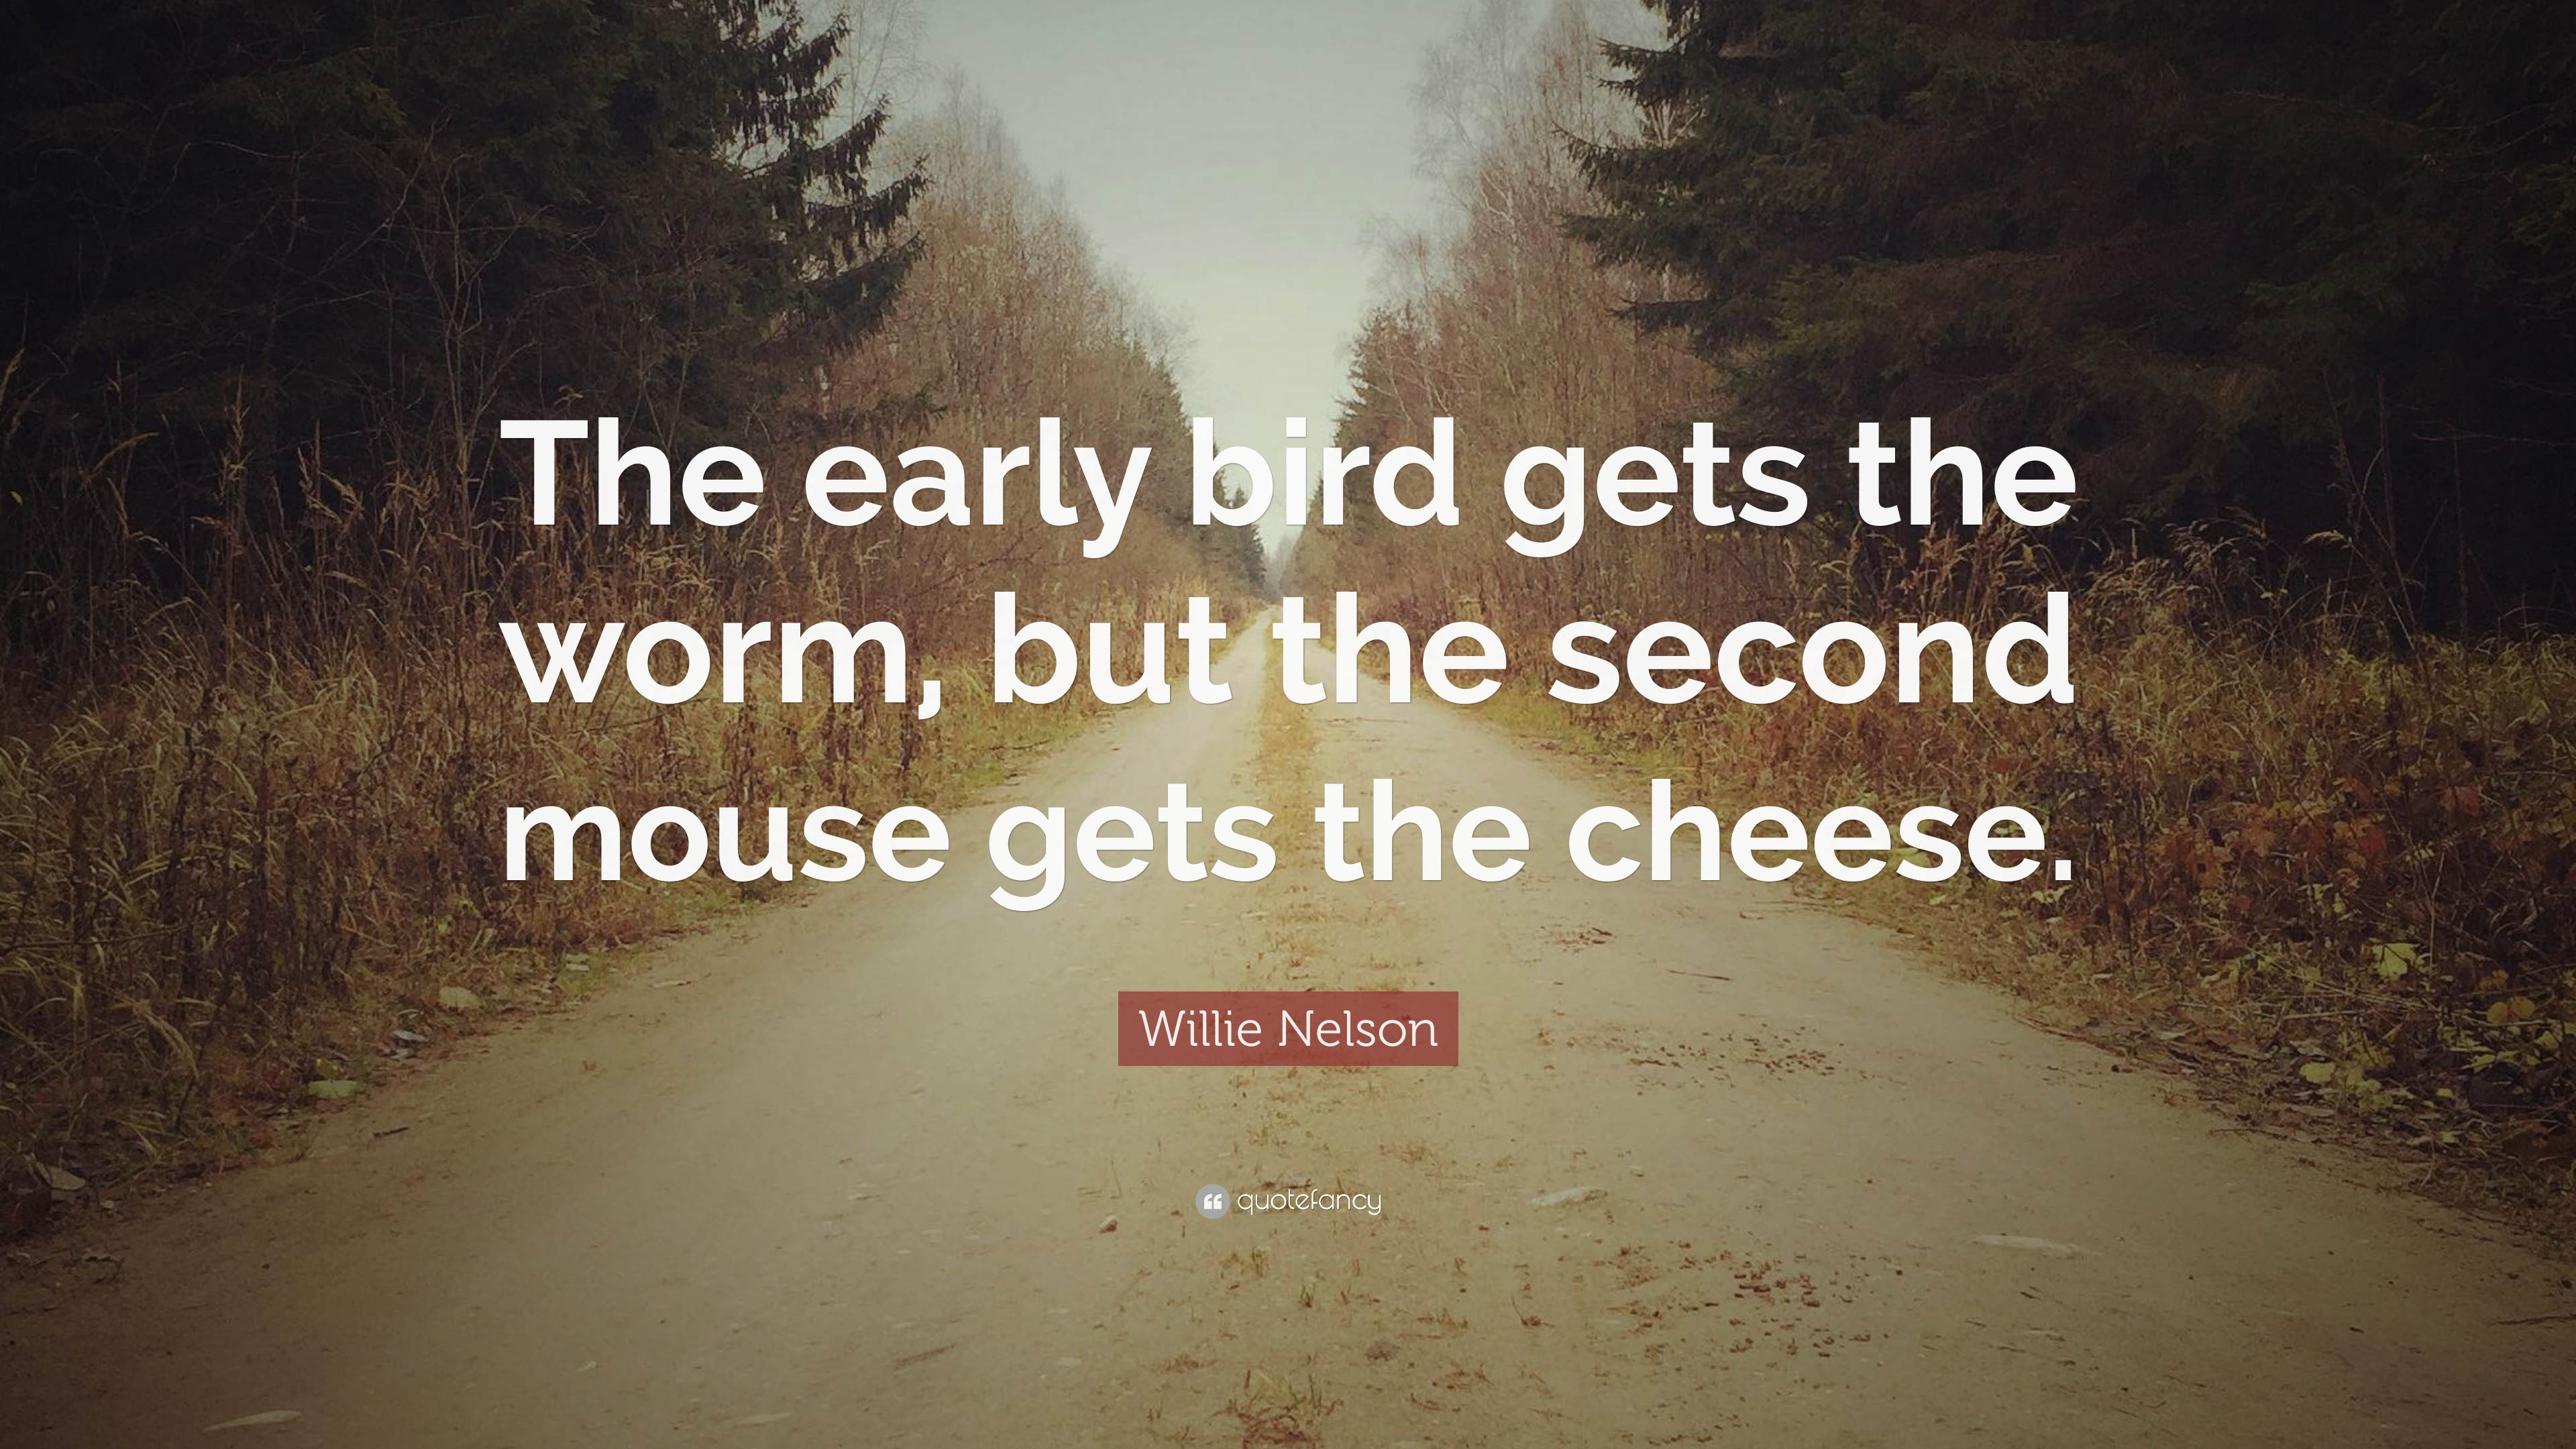 Willie Nelson Quote The Early Bird Gets The Worm But The Second